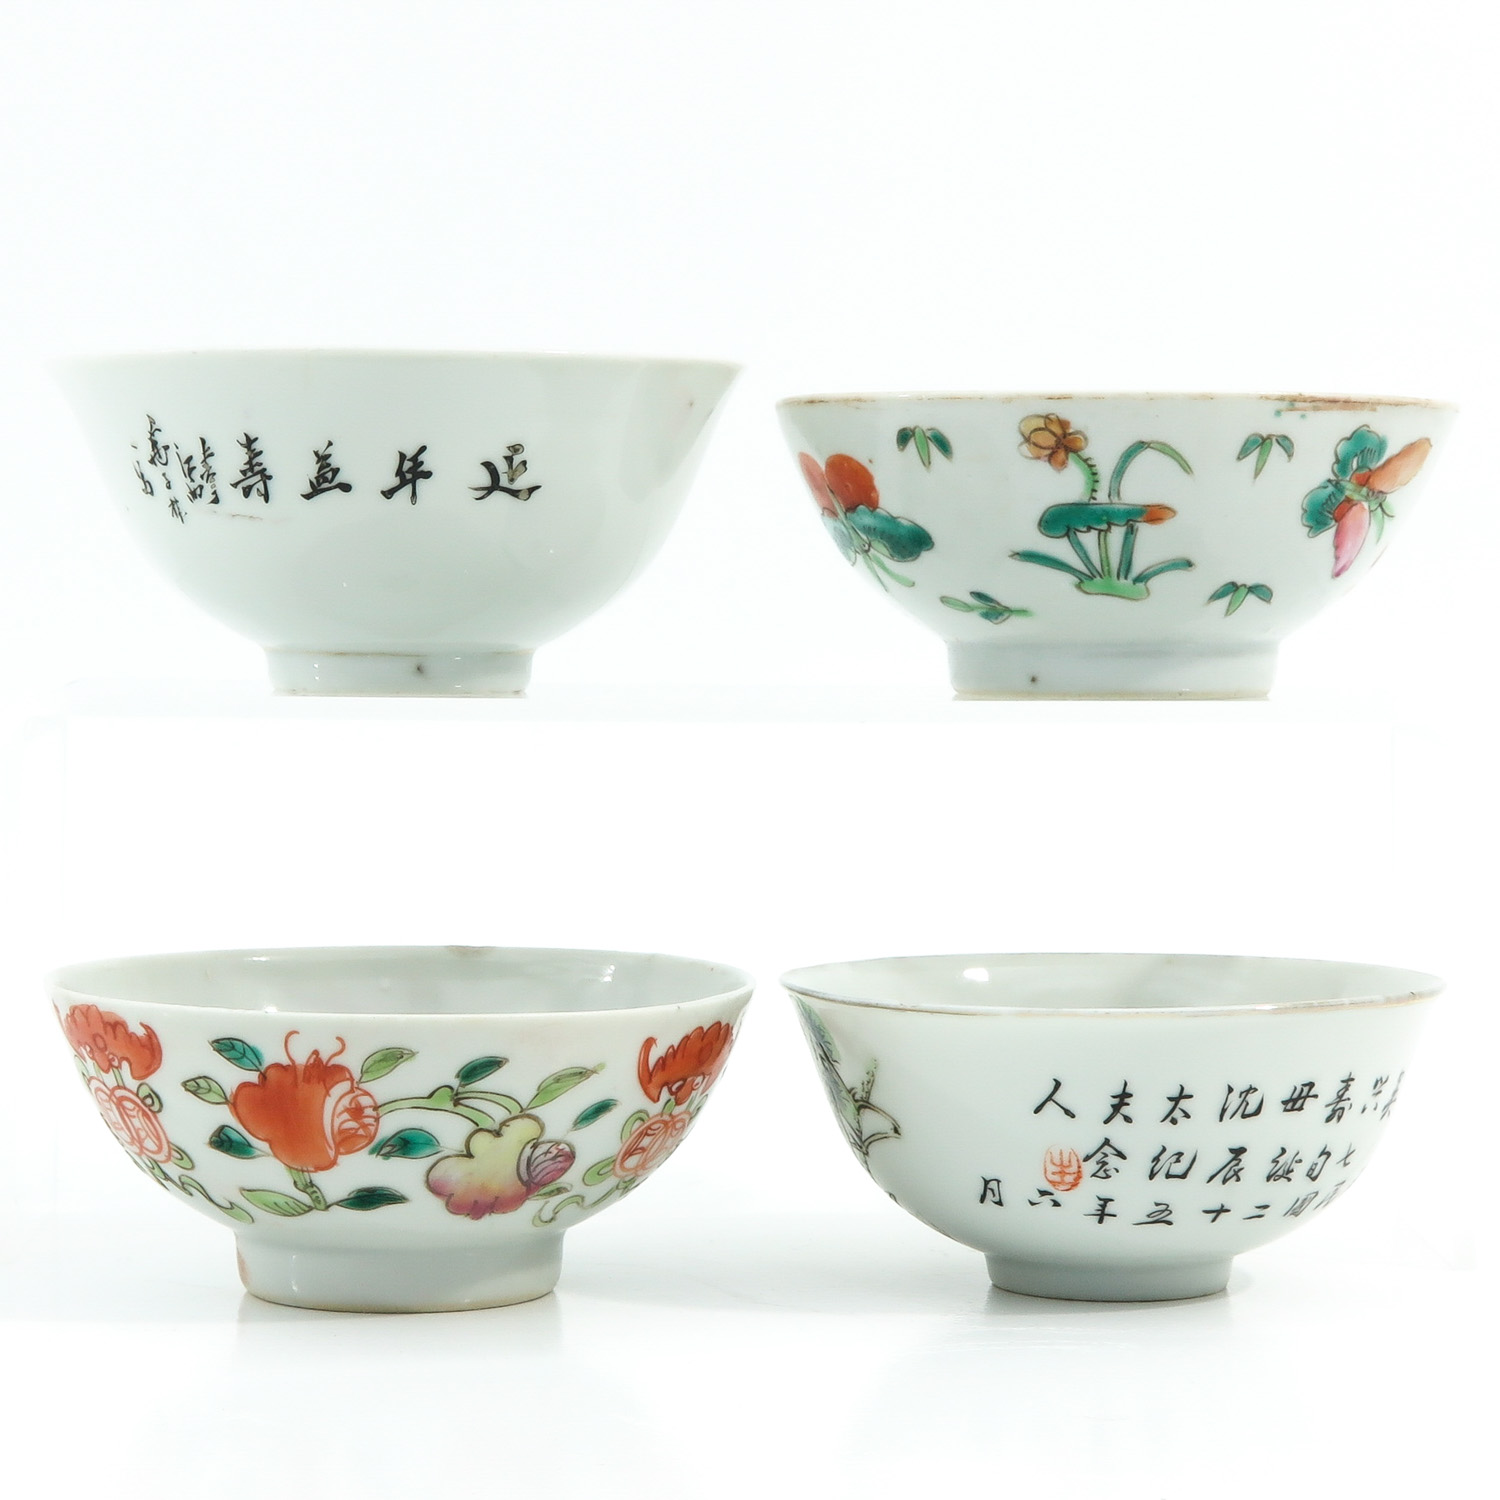 A Collection of 4 Polychrome Bowls - Image 3 of 10